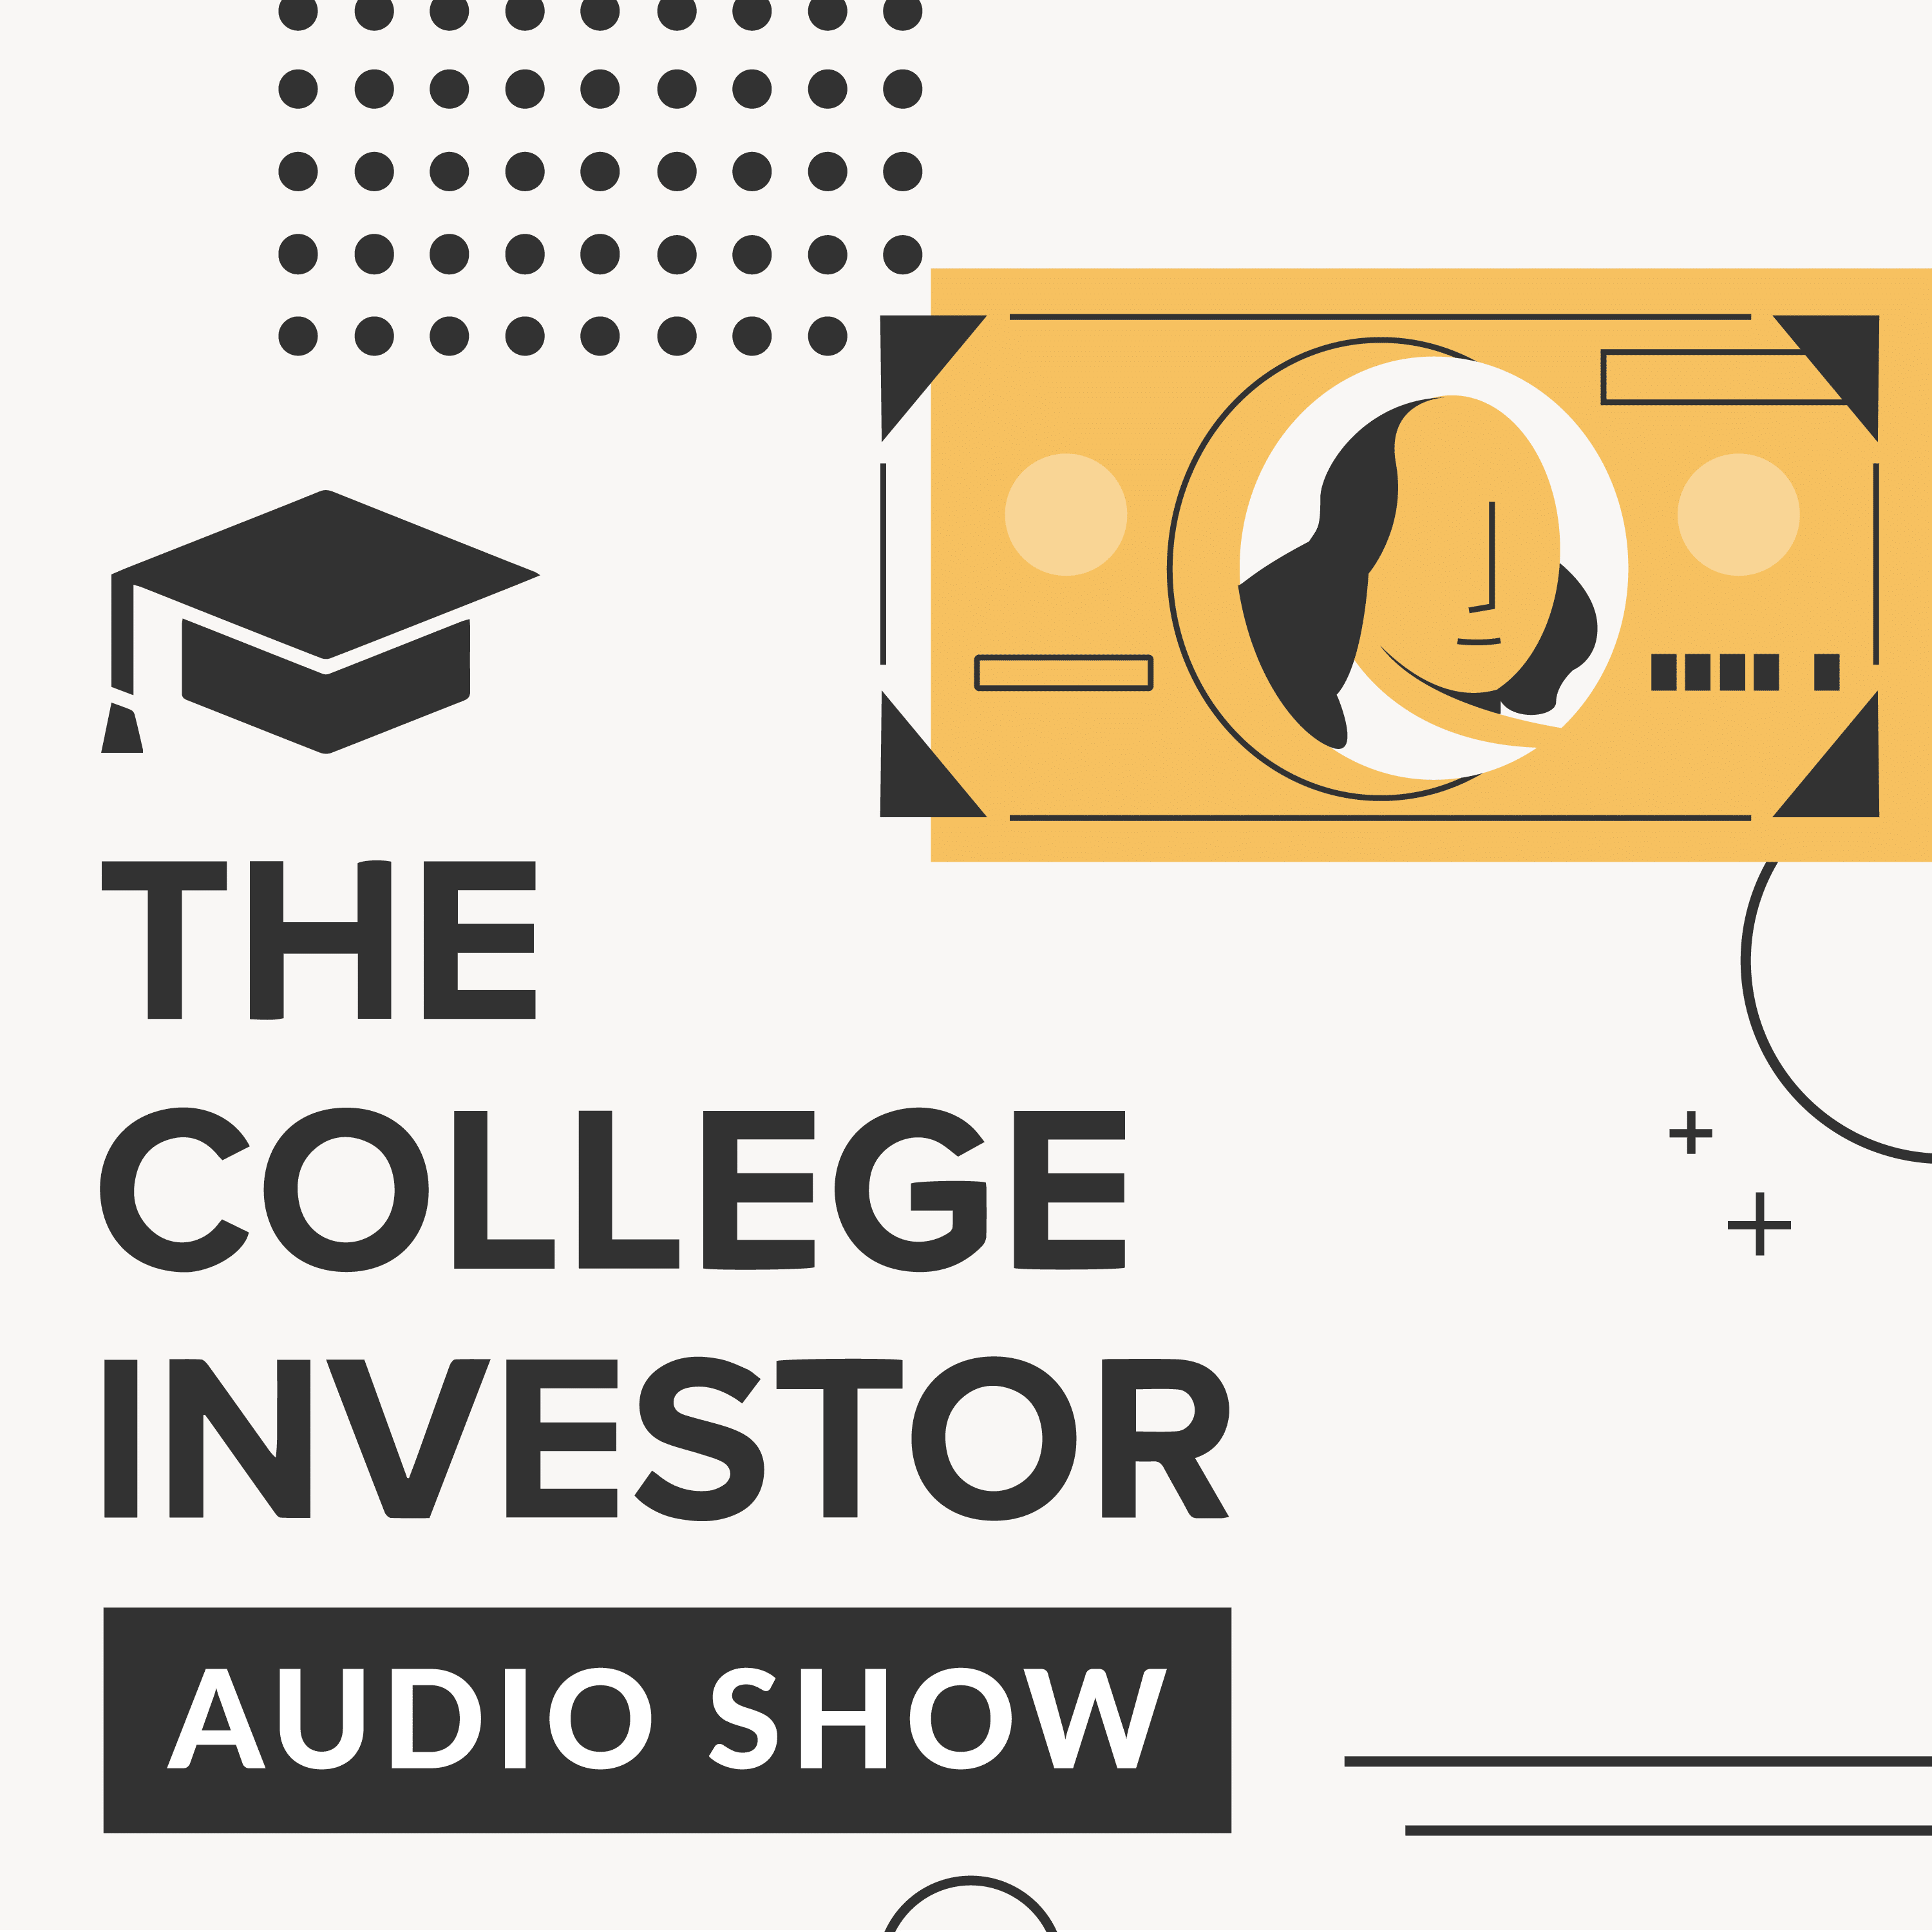 The College Investor Audio Show Cover 2021